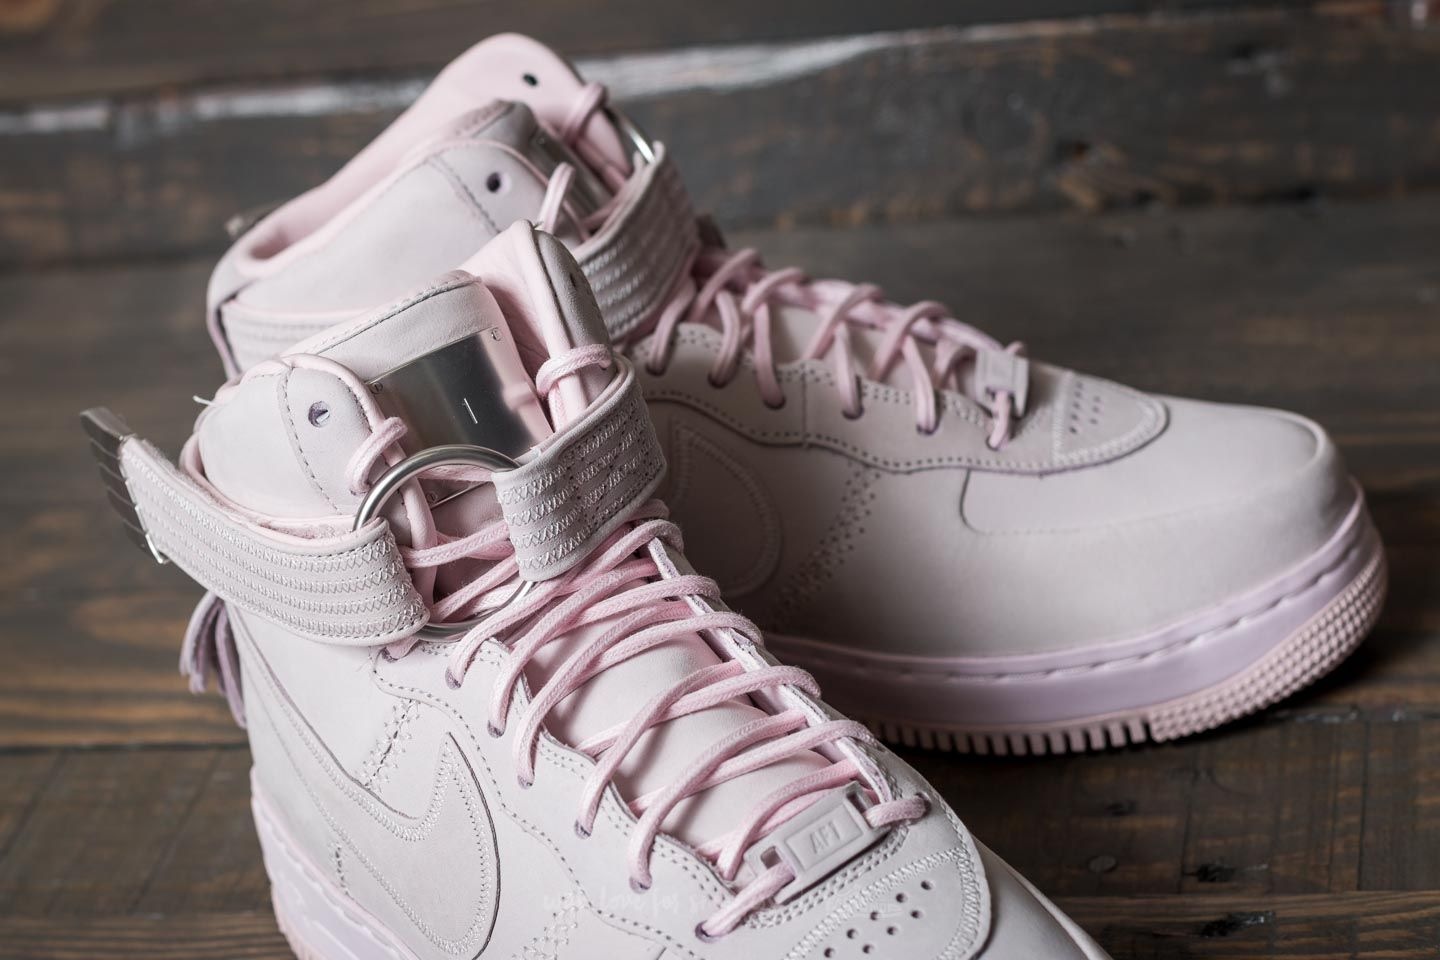 premium selection 6cce8 dd0c1 top quality nike air force 1 high utility w shoes pink 2ced2 1a17d   wholesale nike air force 1 high sl pearl pink pearl pink at a great price  179